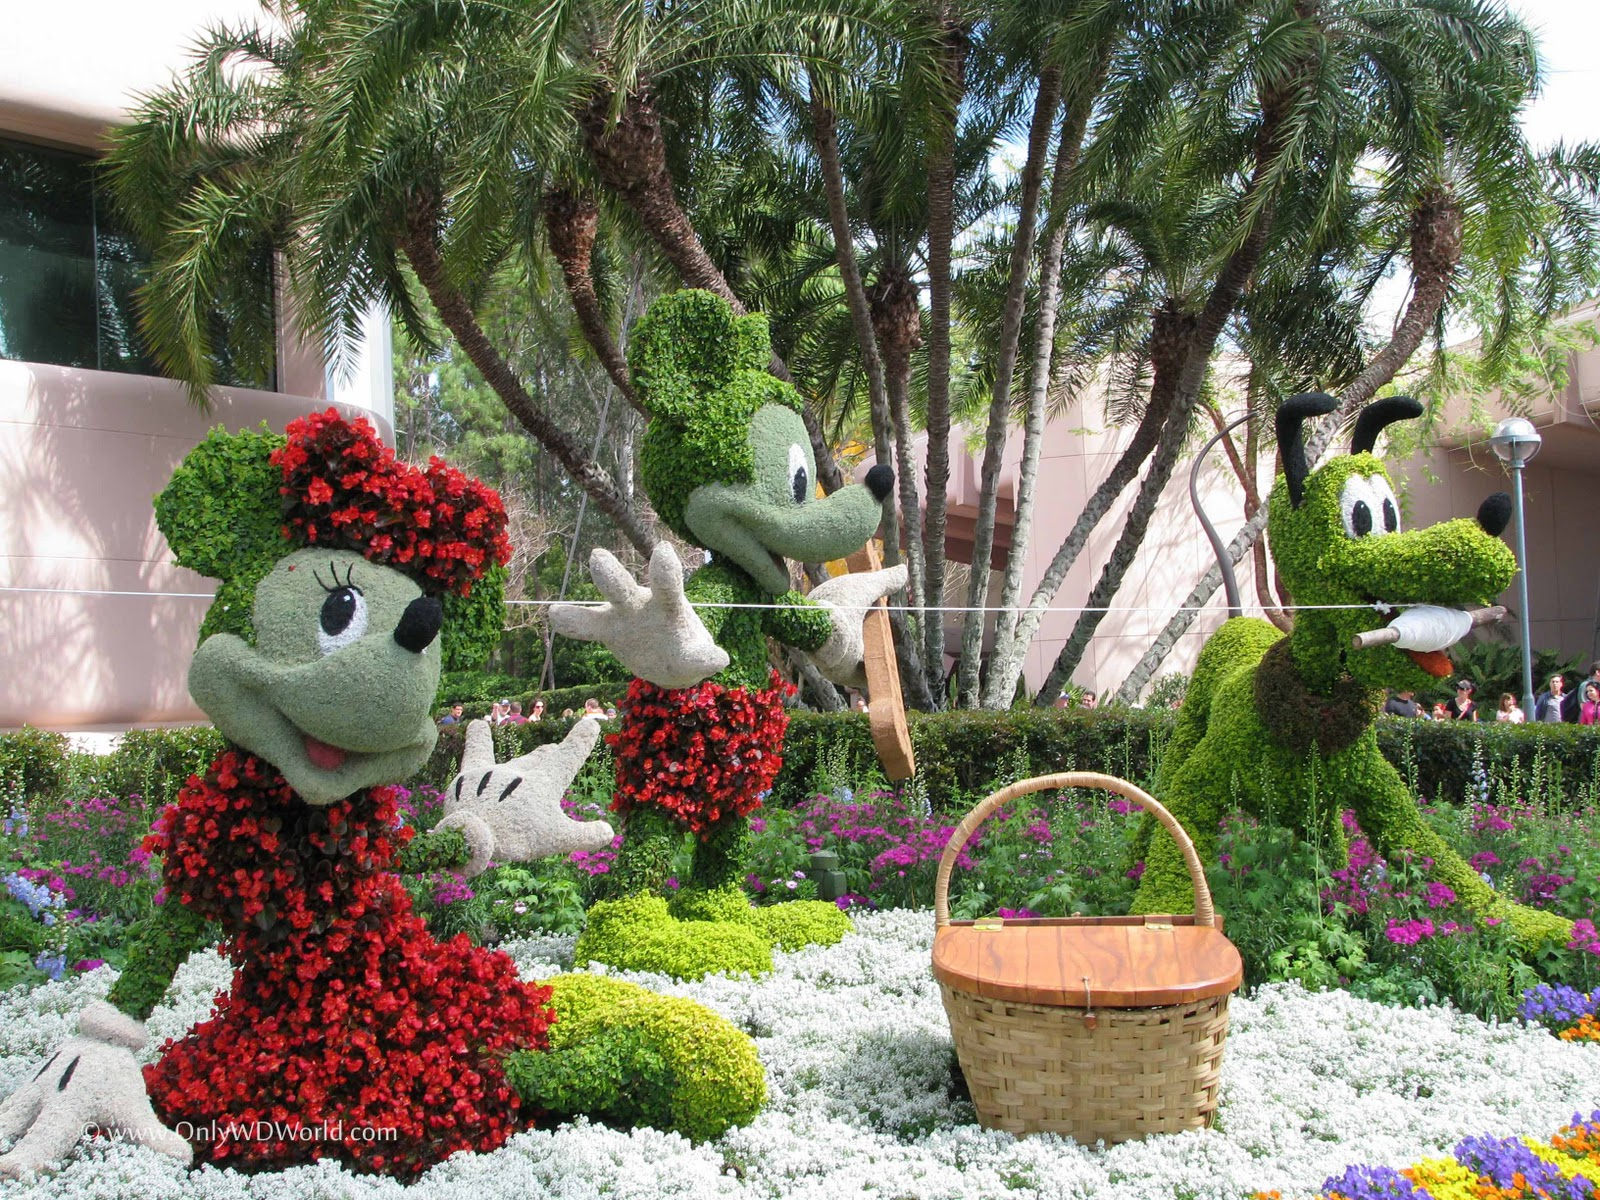 Disney World Blossoms During The 2011 Epcot International Flower And Garden Festival Disney